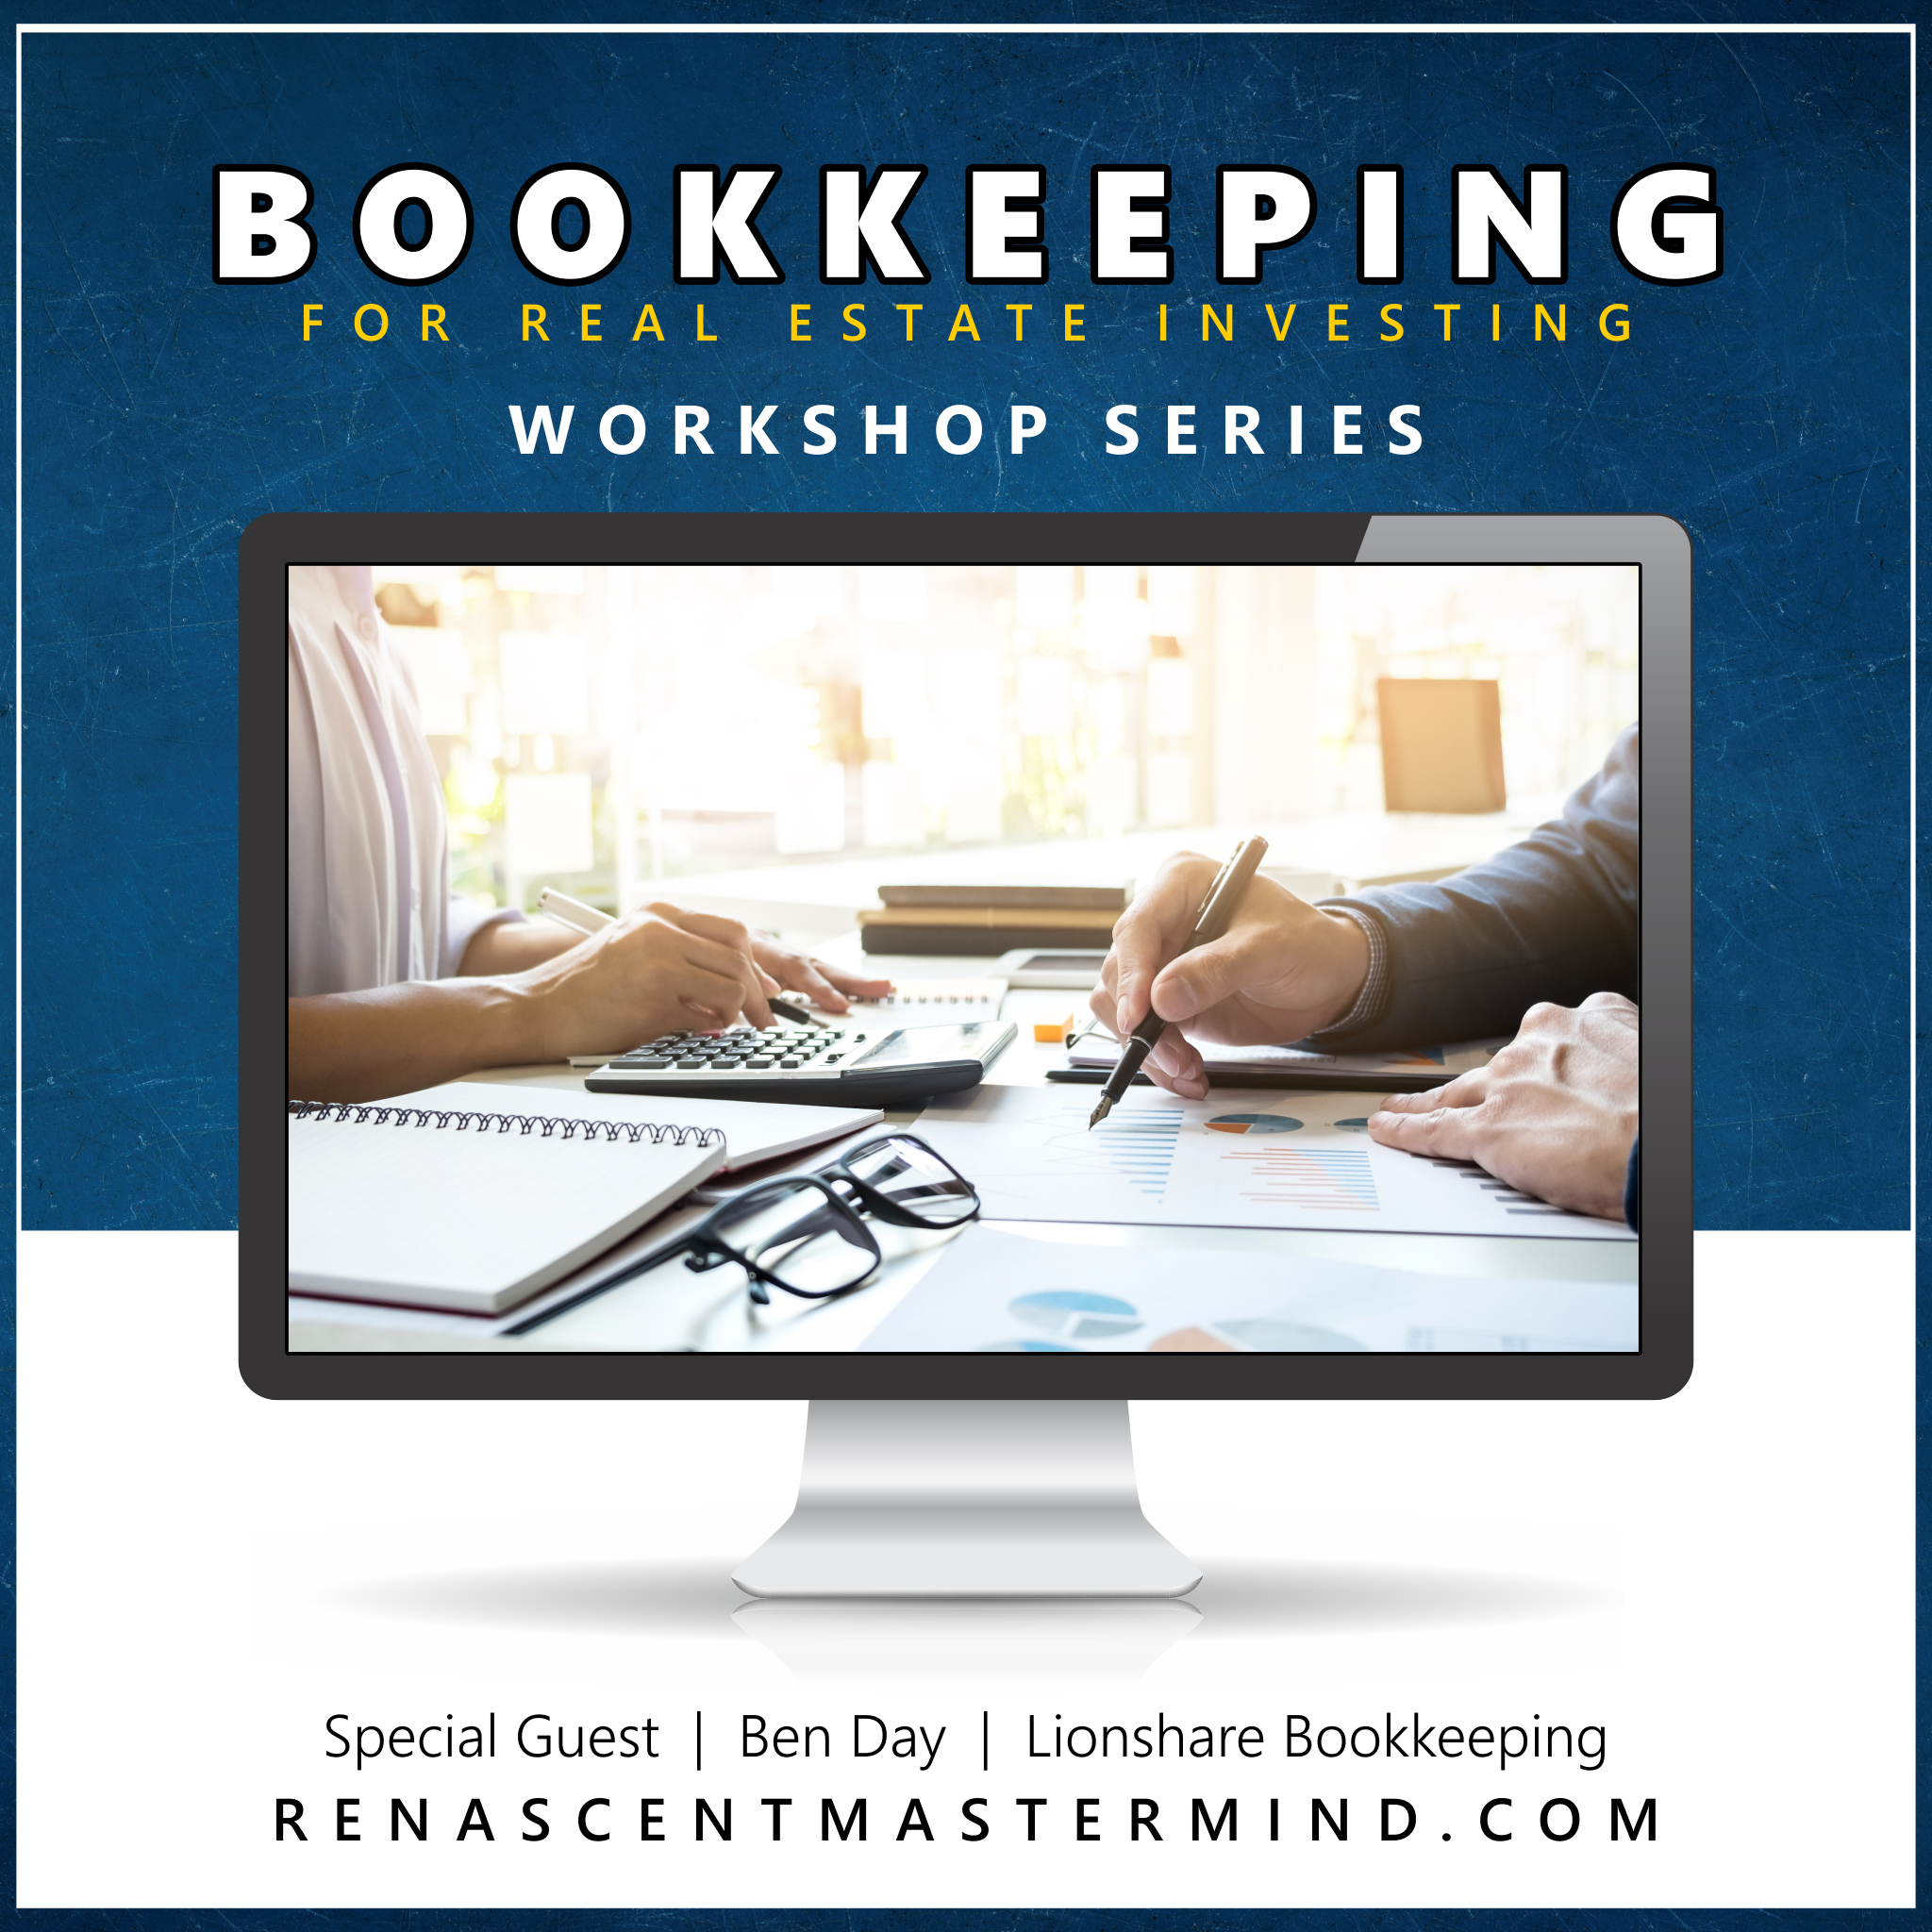 Bookkeeping & Accounting with Ben Day of Lionshare Bookkeeping | Workshop Series